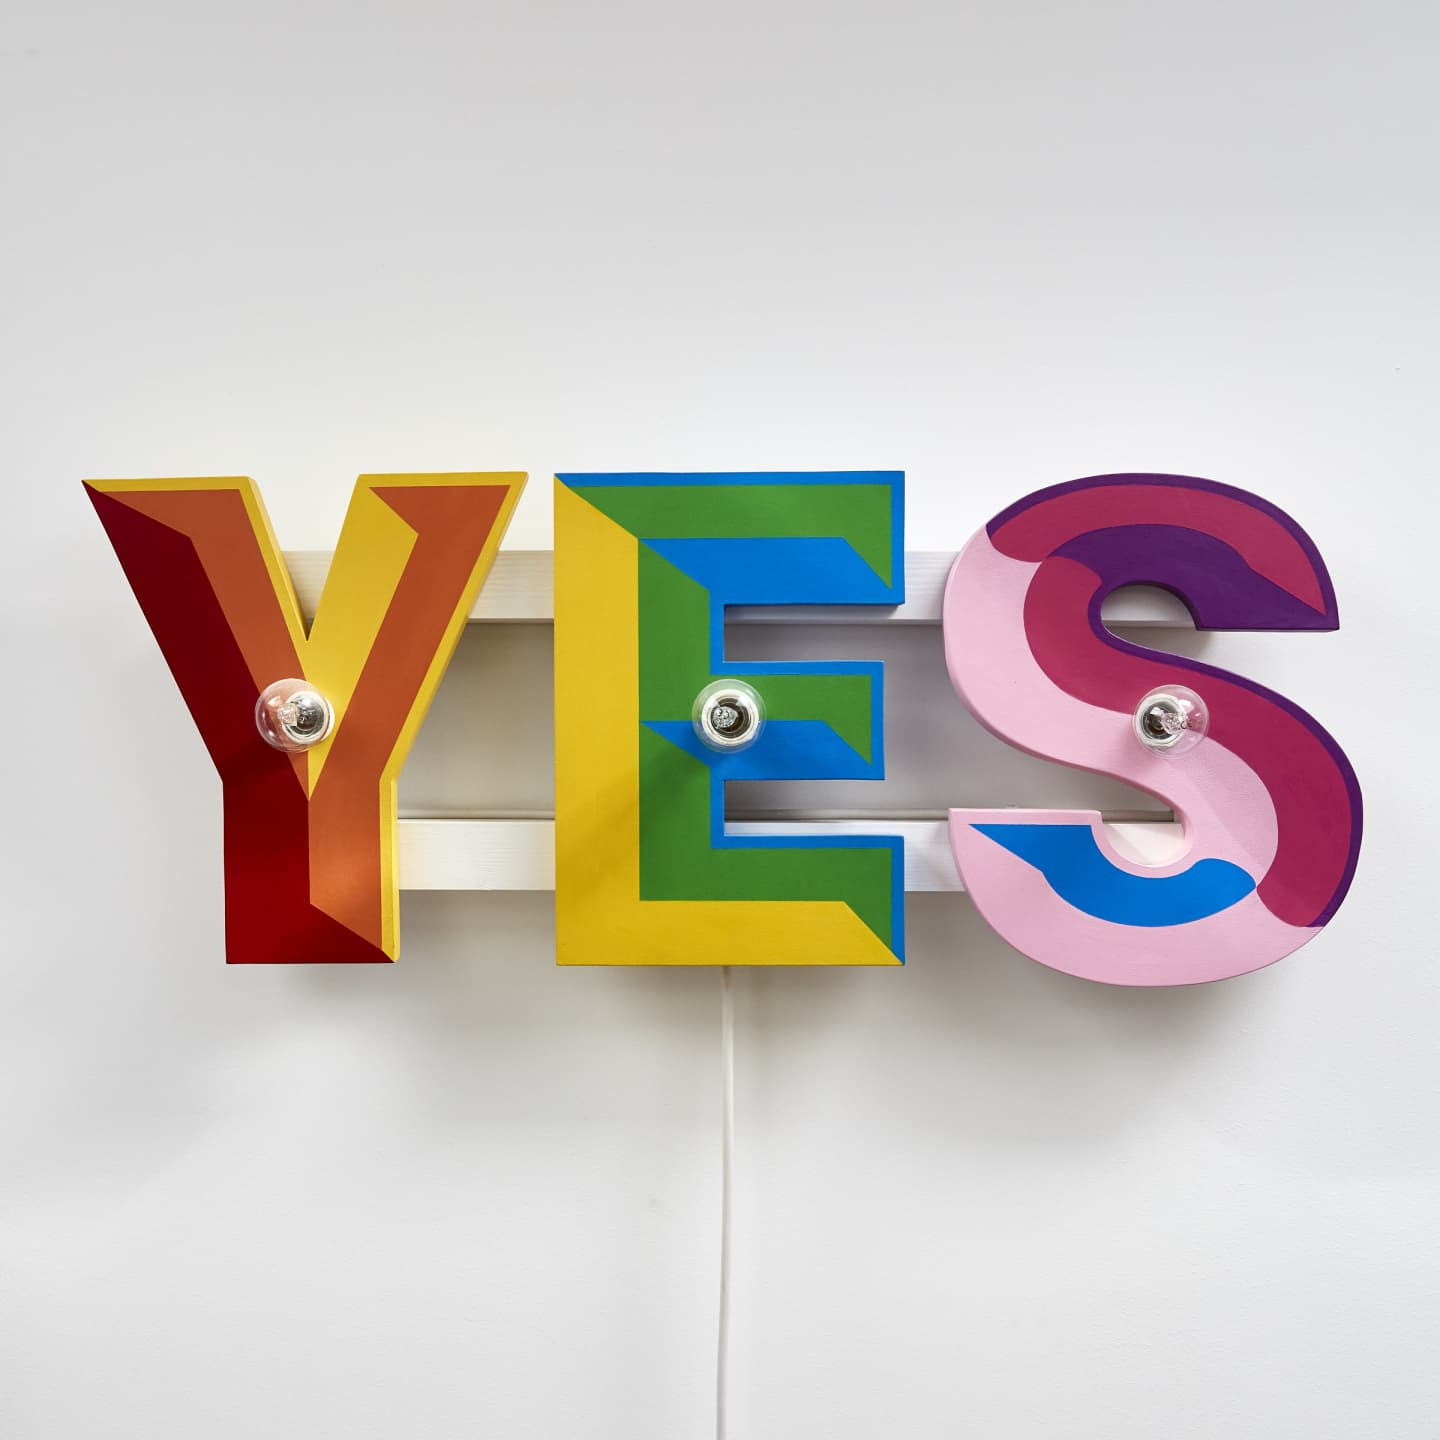 Lights that spell out 'yes'